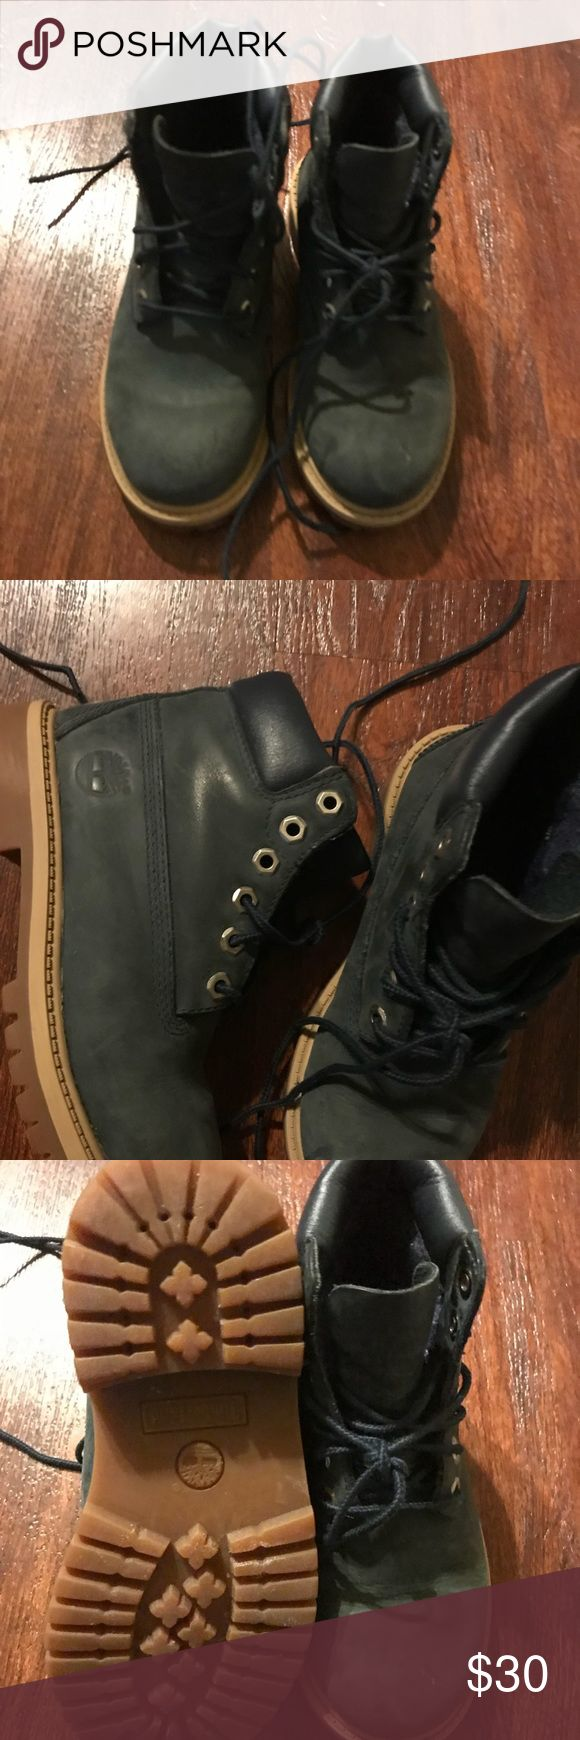 Timberland toddler boots A lovely dark green. Worn a few times but still in great condition! Timberland Shoes Boots